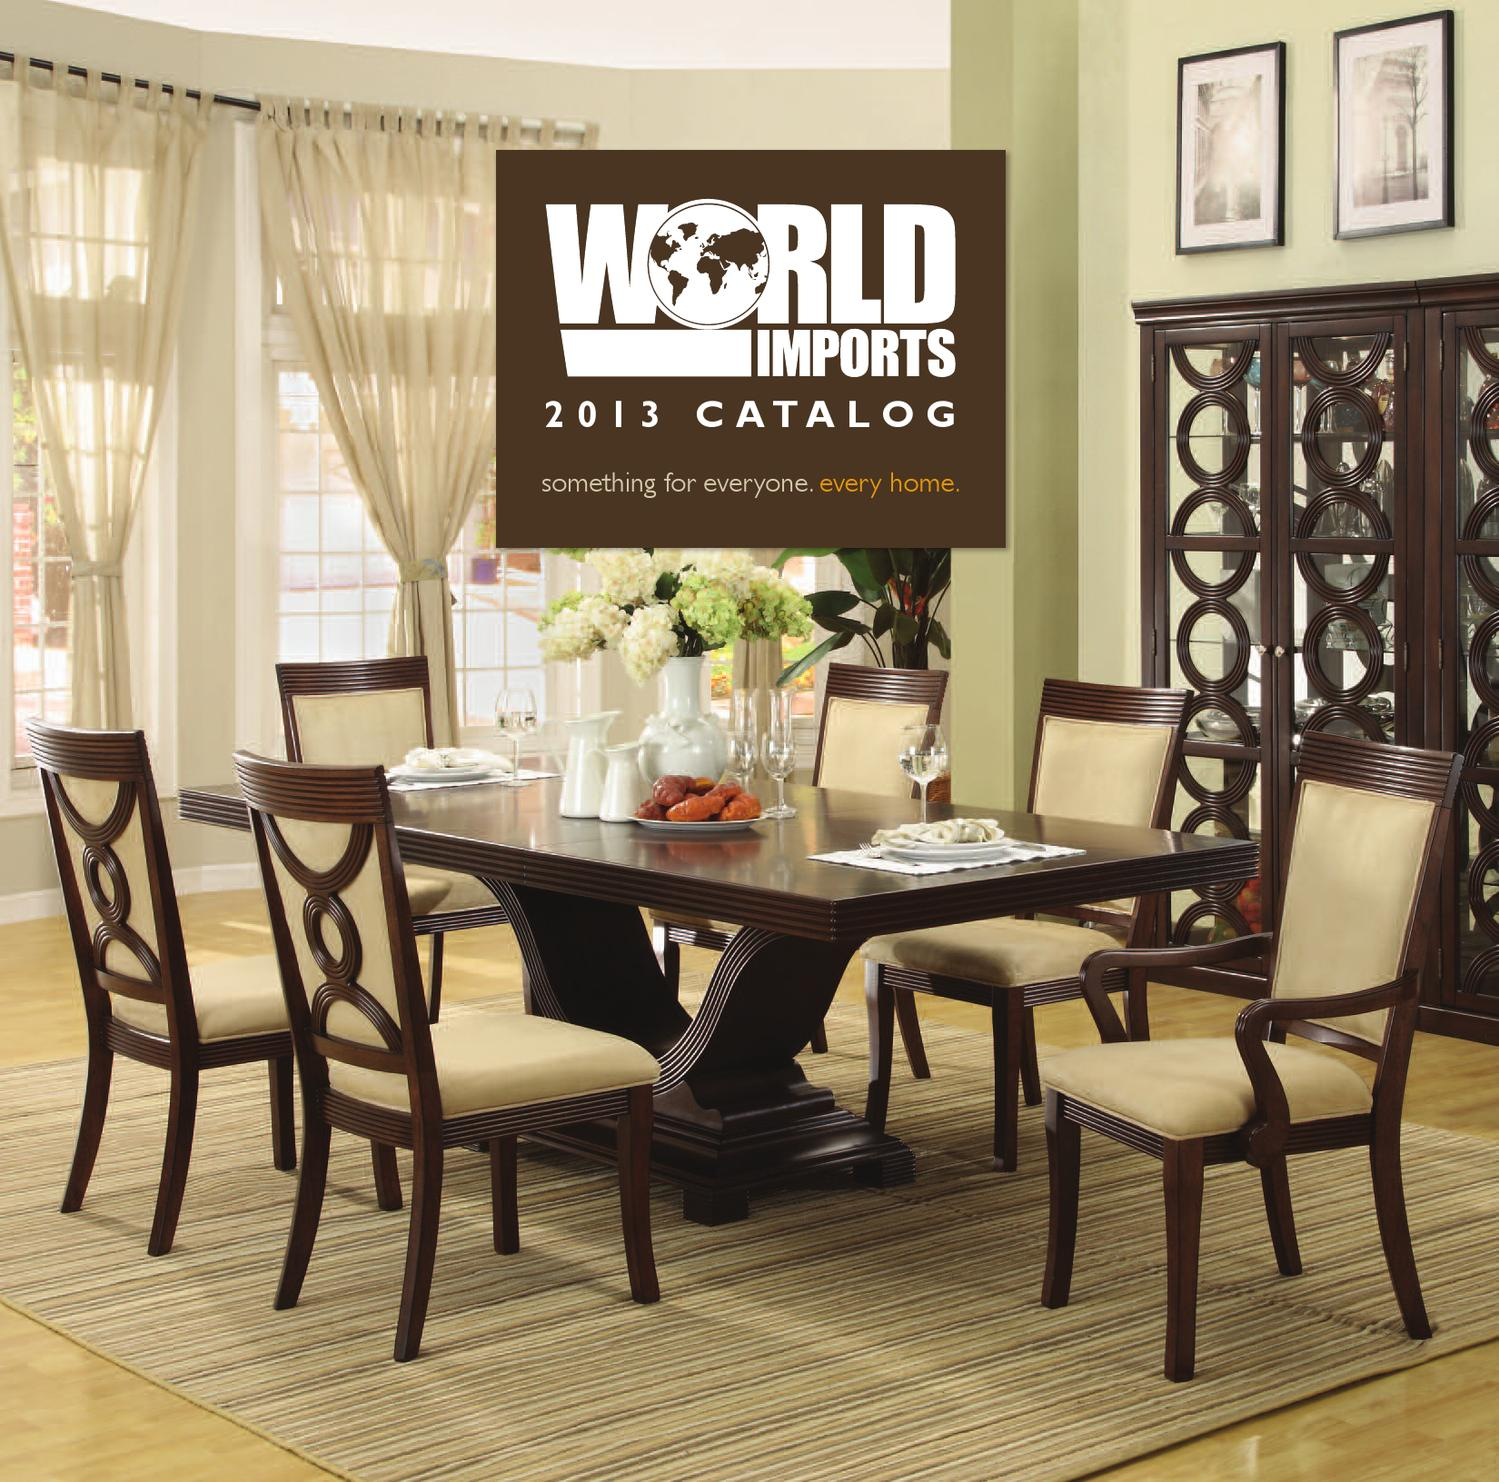 Exceptional World Imports 2013 Catalog By World Imports Ltd   Issuu